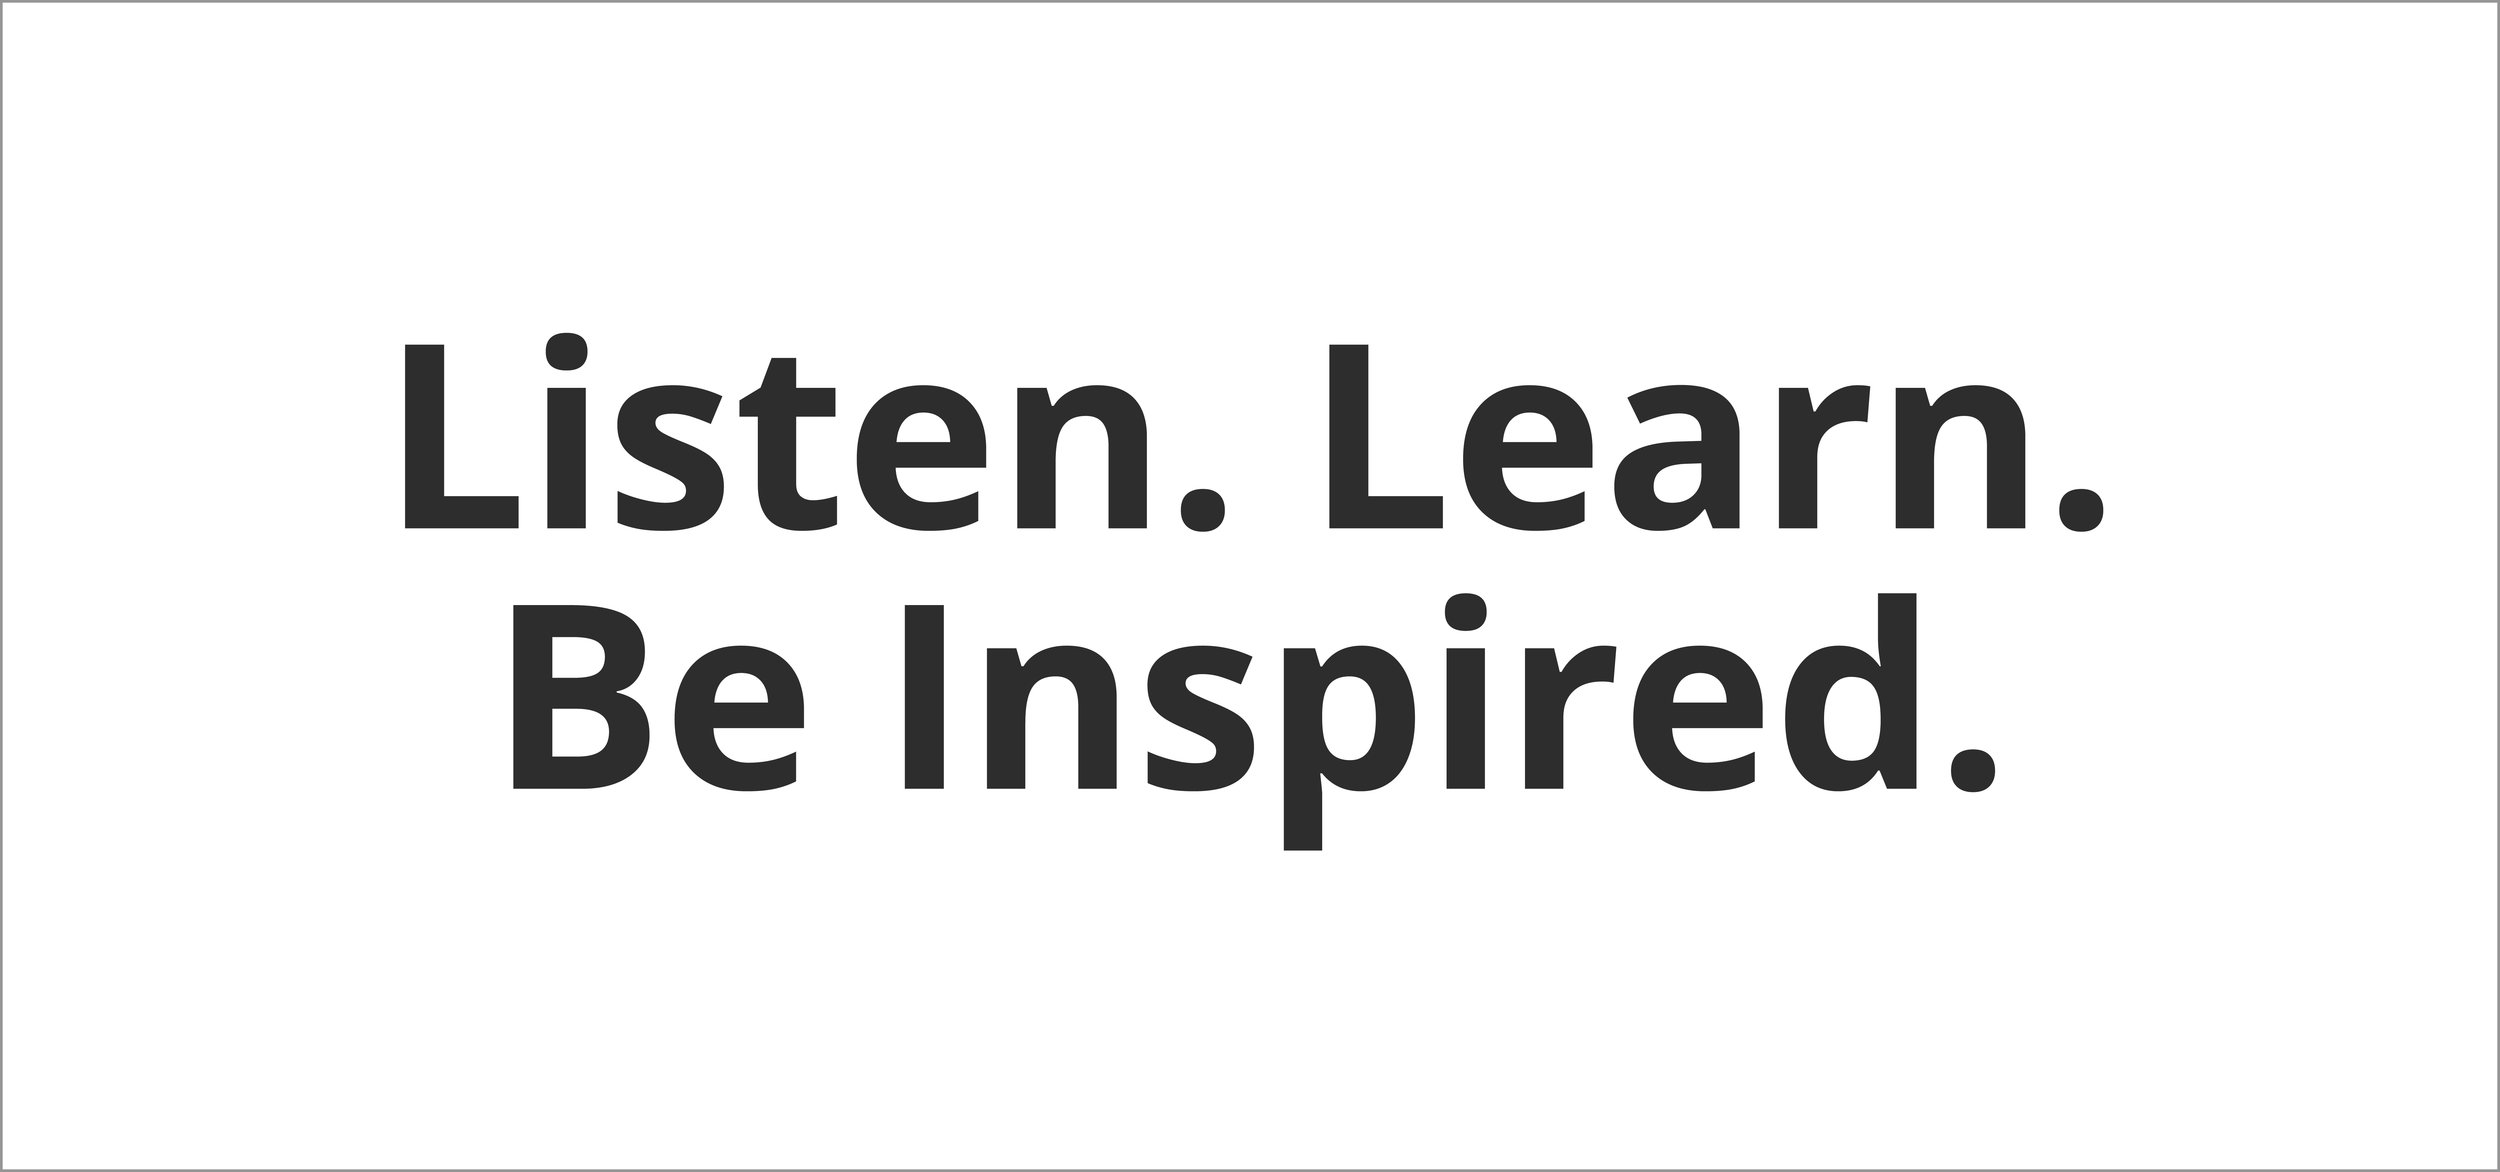 listen-learn-beinspired-logo.jpg